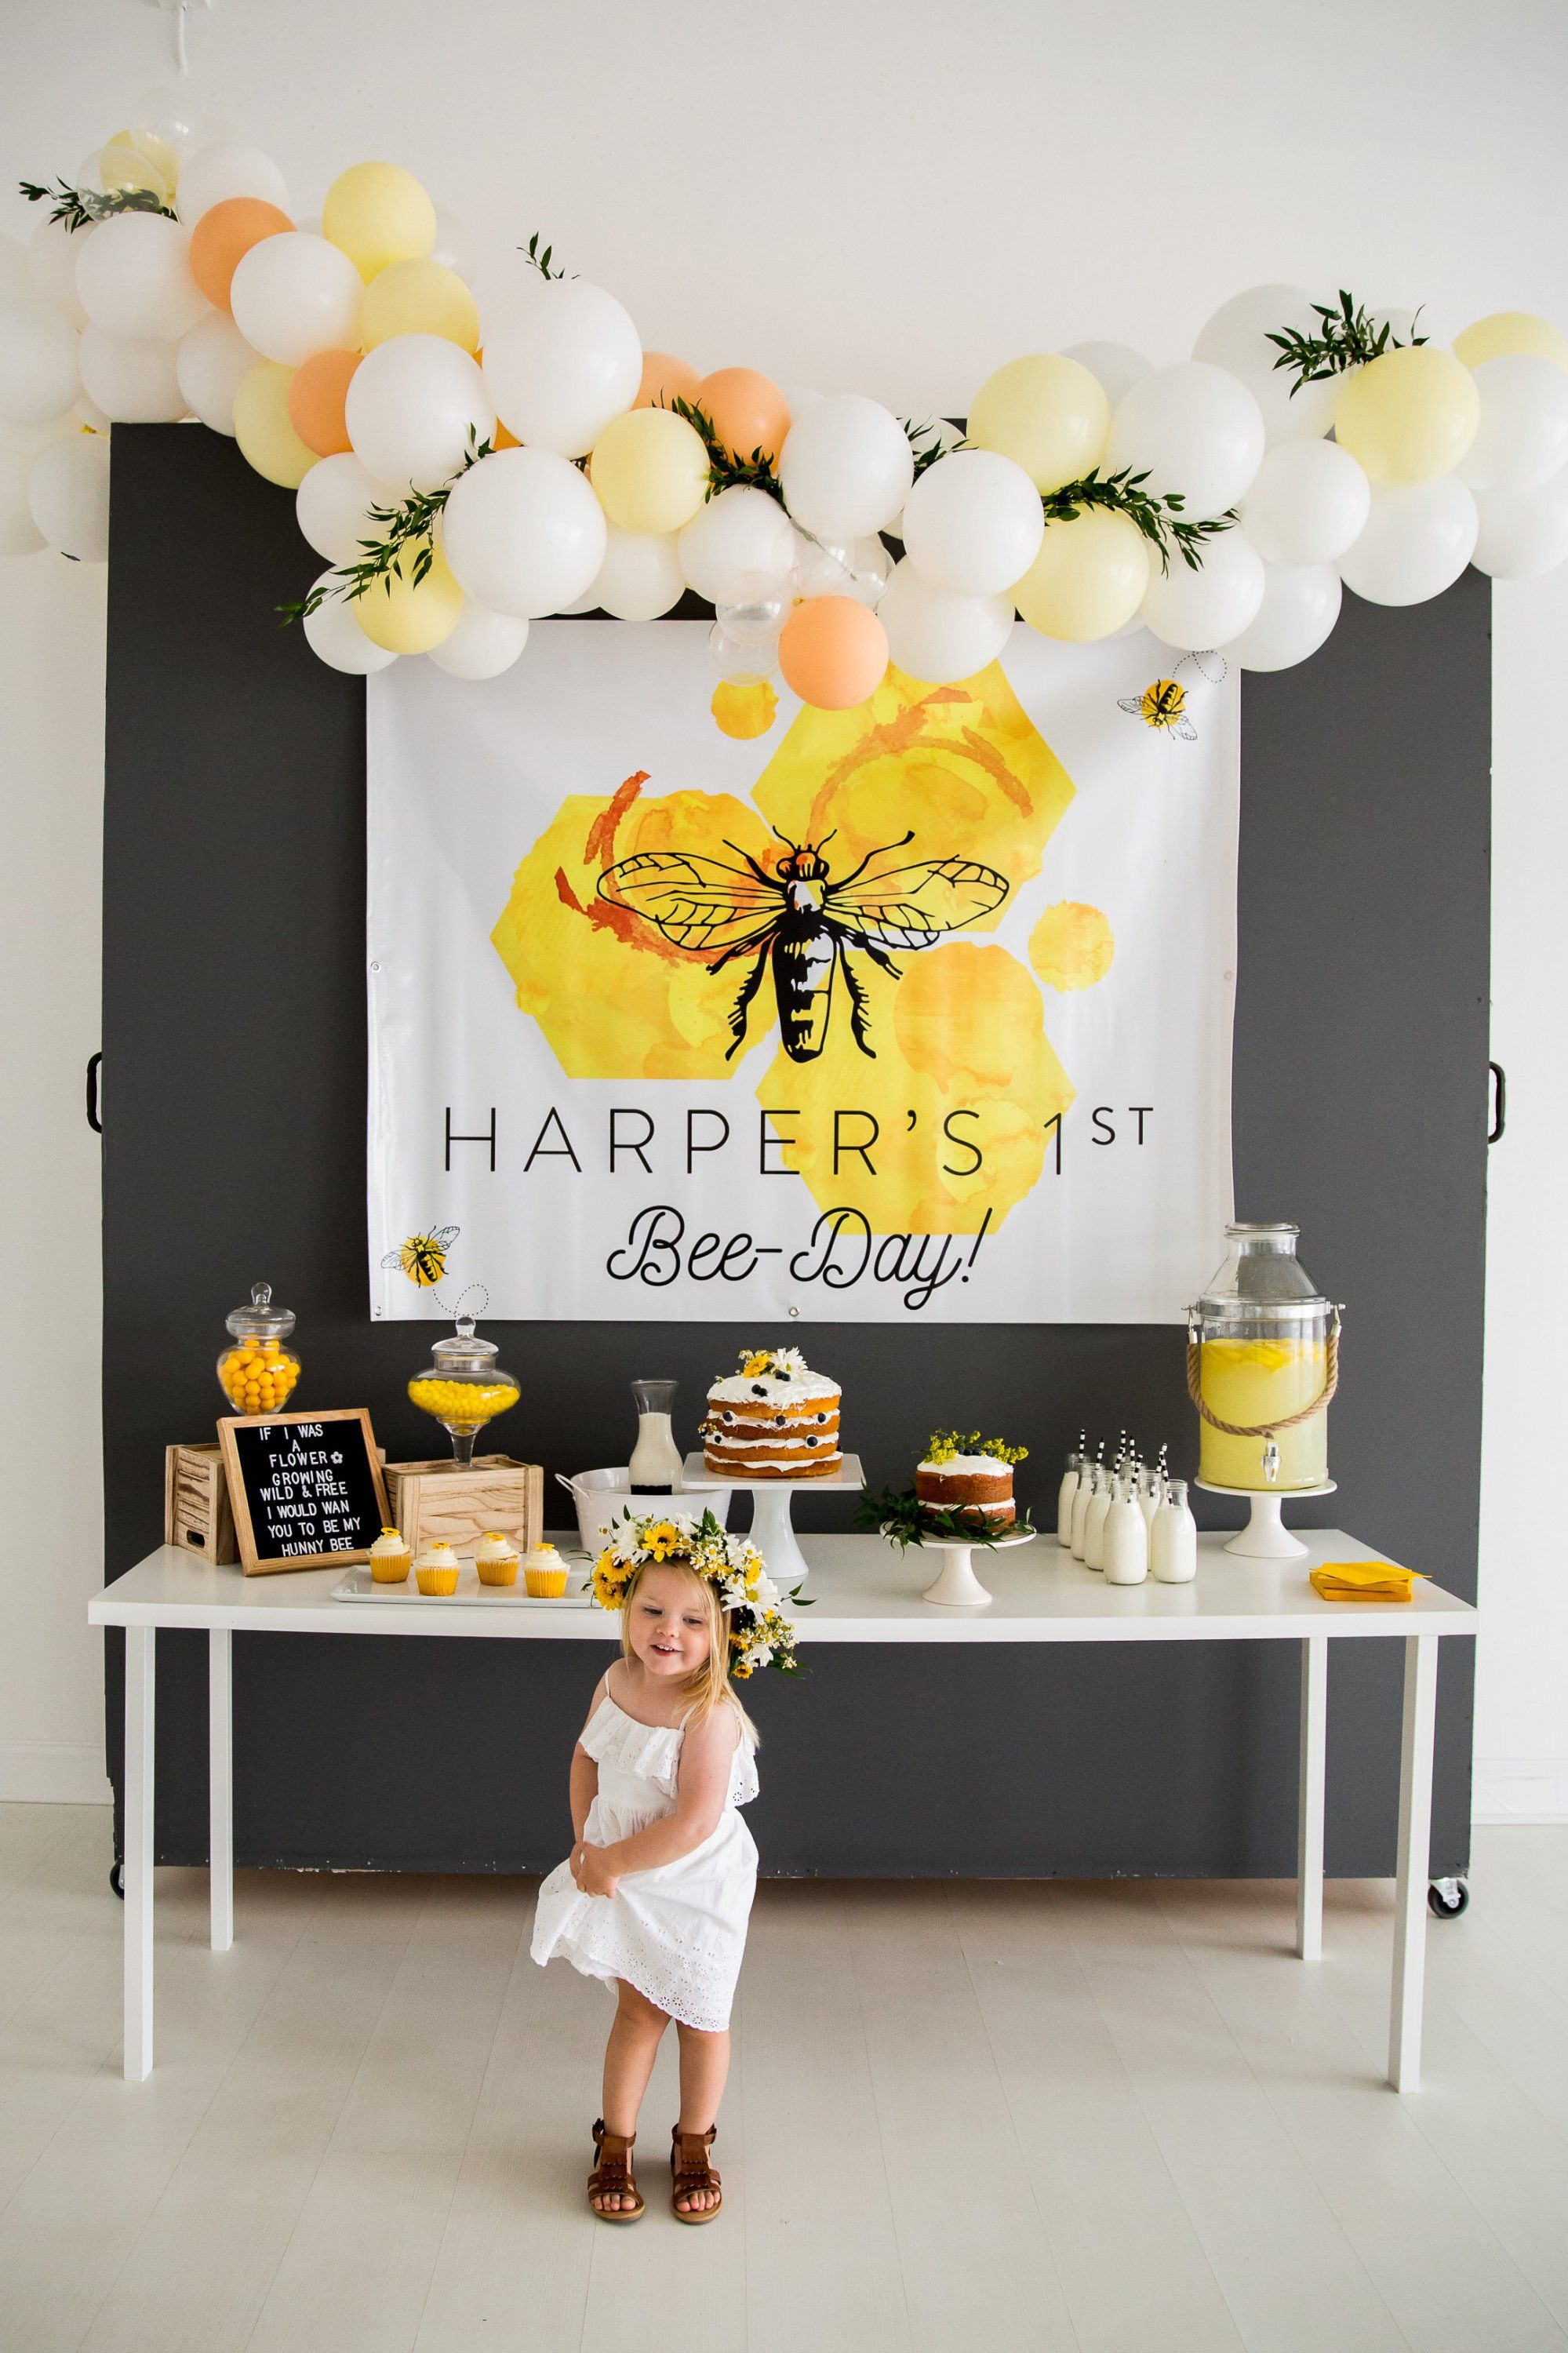 Party Supplies Celebrations & Occasions I AM 1 TODAY Garland Chair Banner Kids 1st Birthday Party Decor